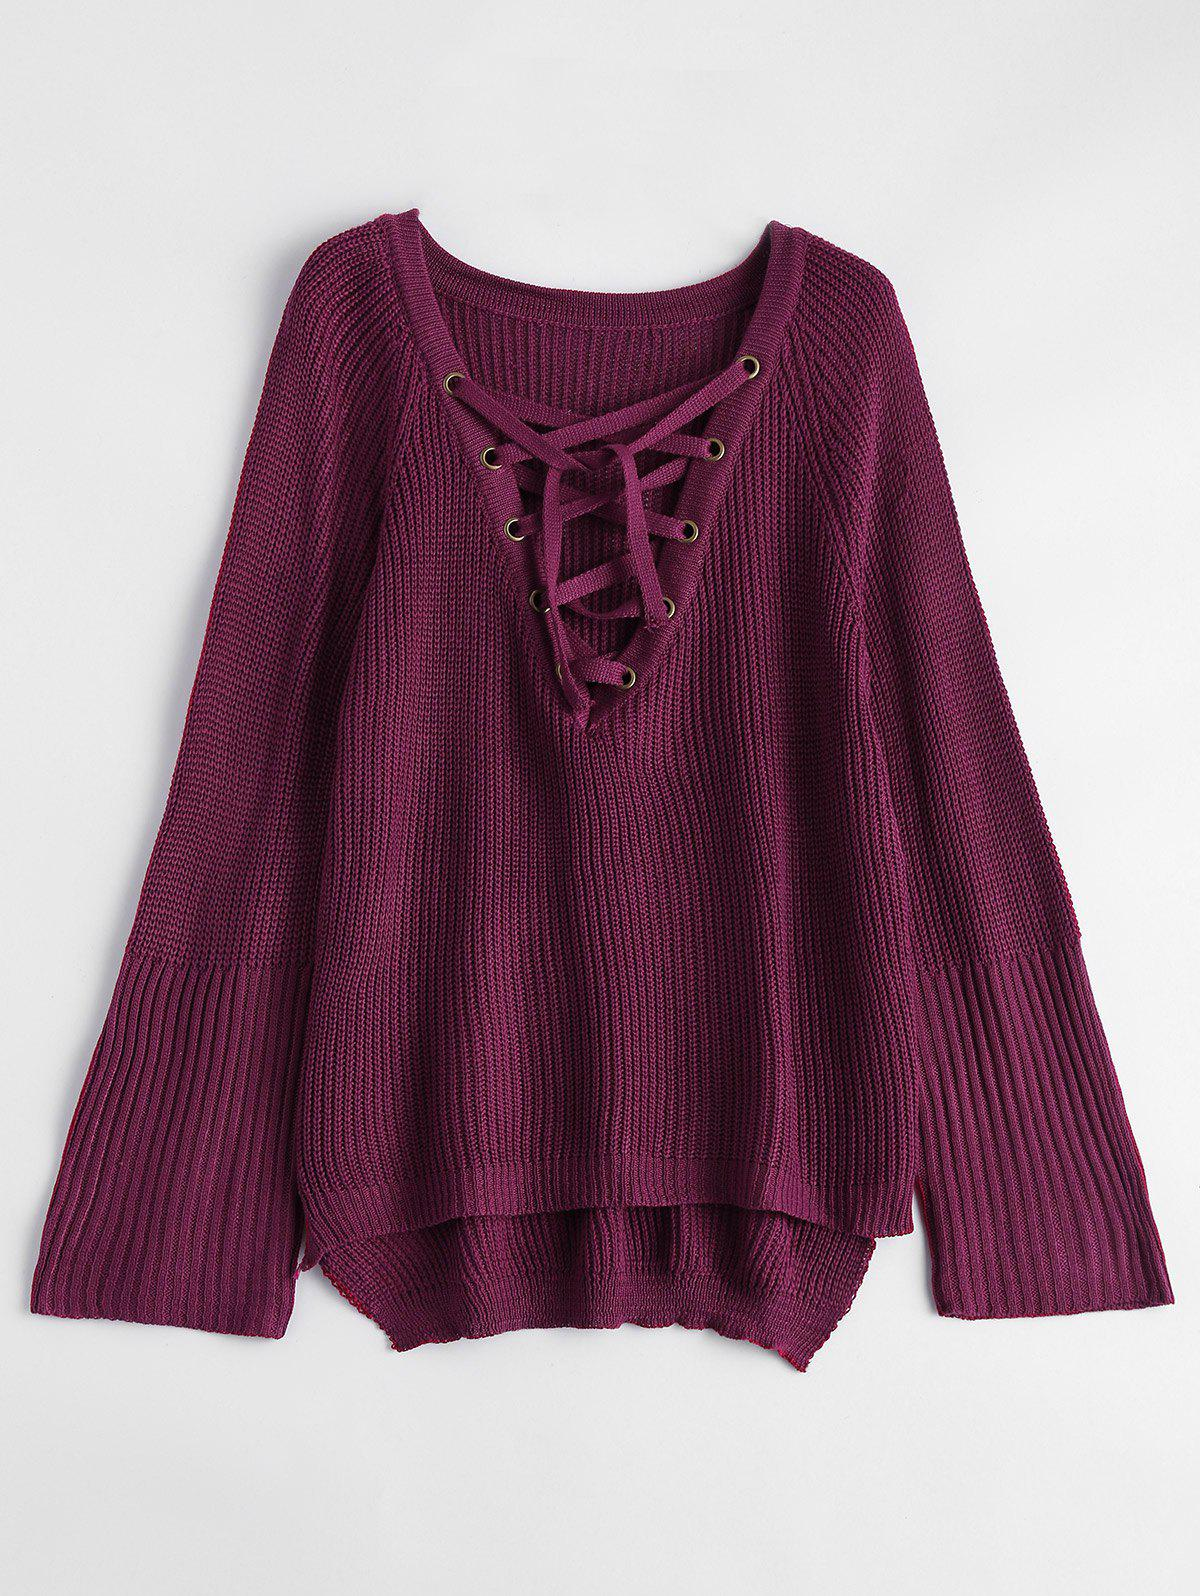 2017 Lace-Up V Neck Pullover Sweater BURGUNDY L In Sweaters ...